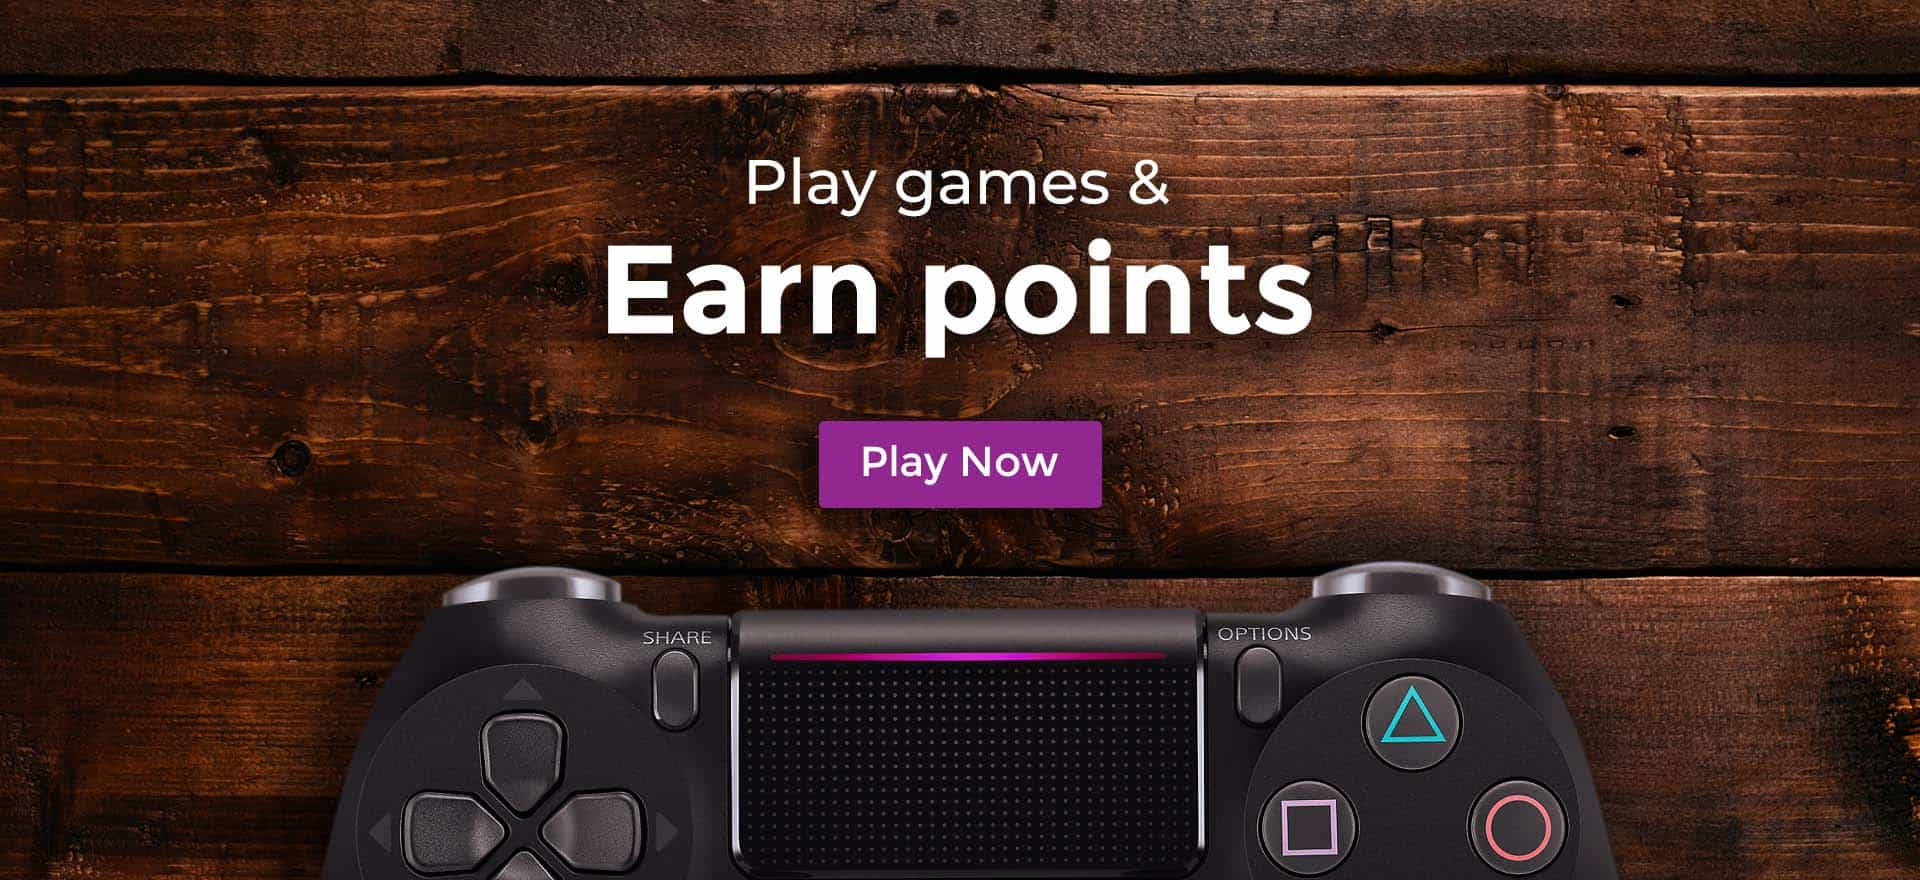 Play games and earn points